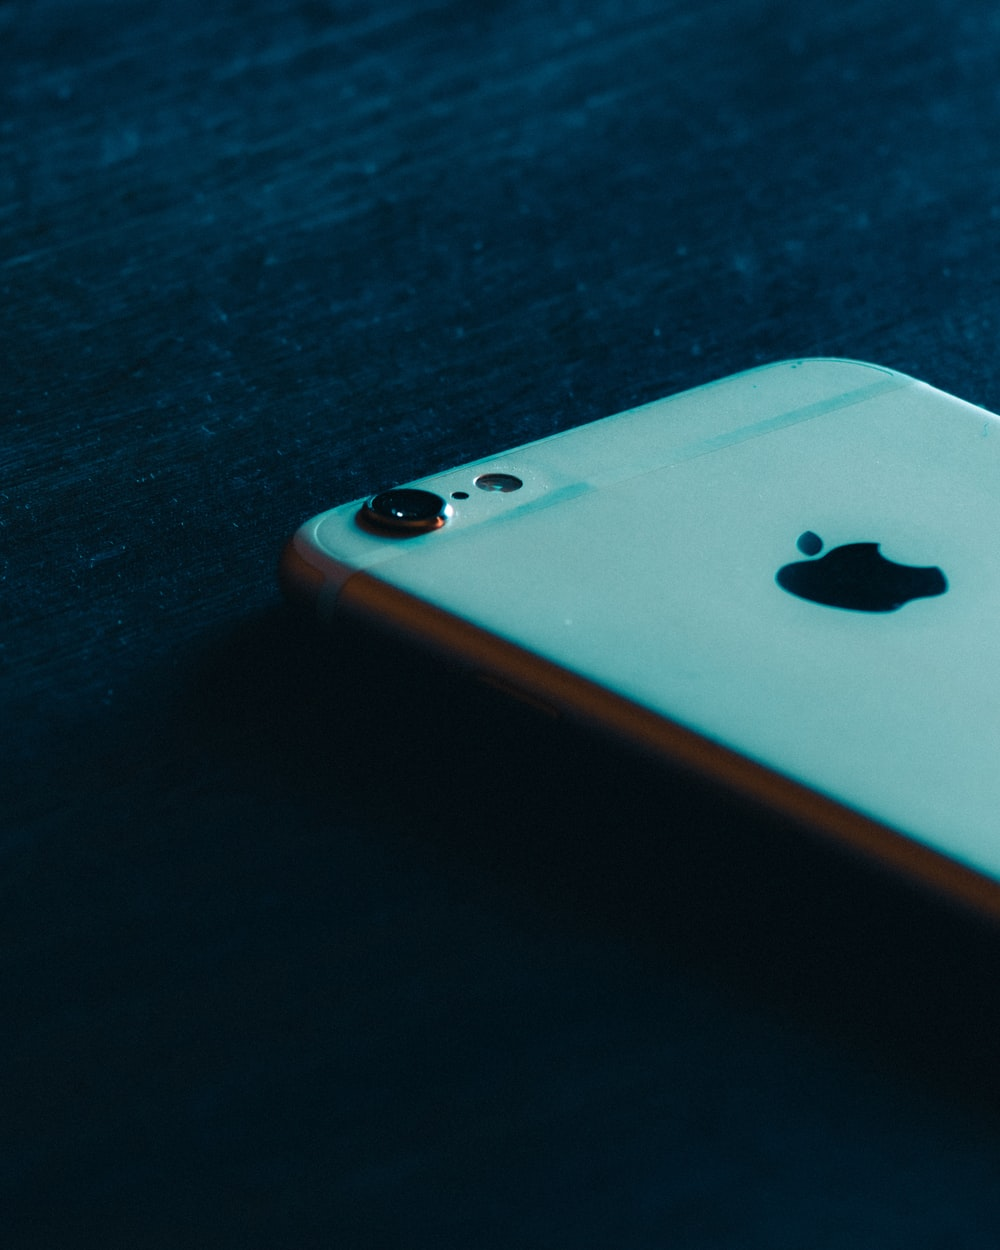 gold iphone 6 on black wooden table